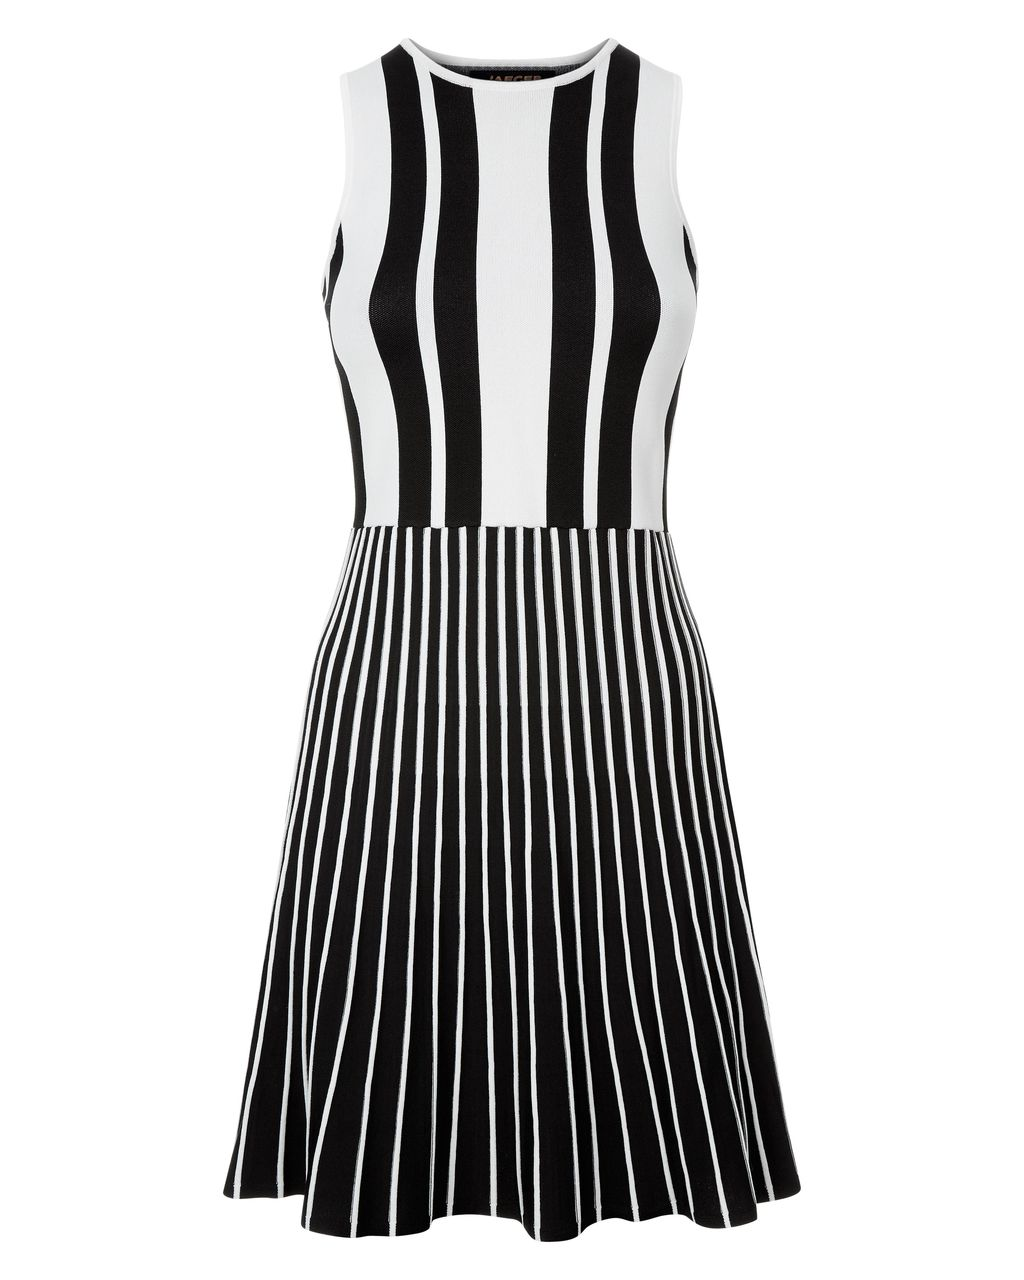 Striped Compact Knitted Dress, Black - pattern: vertical stripes; sleeve style: sleeveless; predominant colour: white; secondary colour: black; occasions: evening; length: just above the knee; fit: fitted at waist & bust; style: fit & flare; fibres: viscose/rayon - stretch; neckline: crew; sleeve length: sleeveless; pattern type: fabric; texture group: jersey - stretchy/drapey; multicoloured: multicoloured; season: s/s 2016